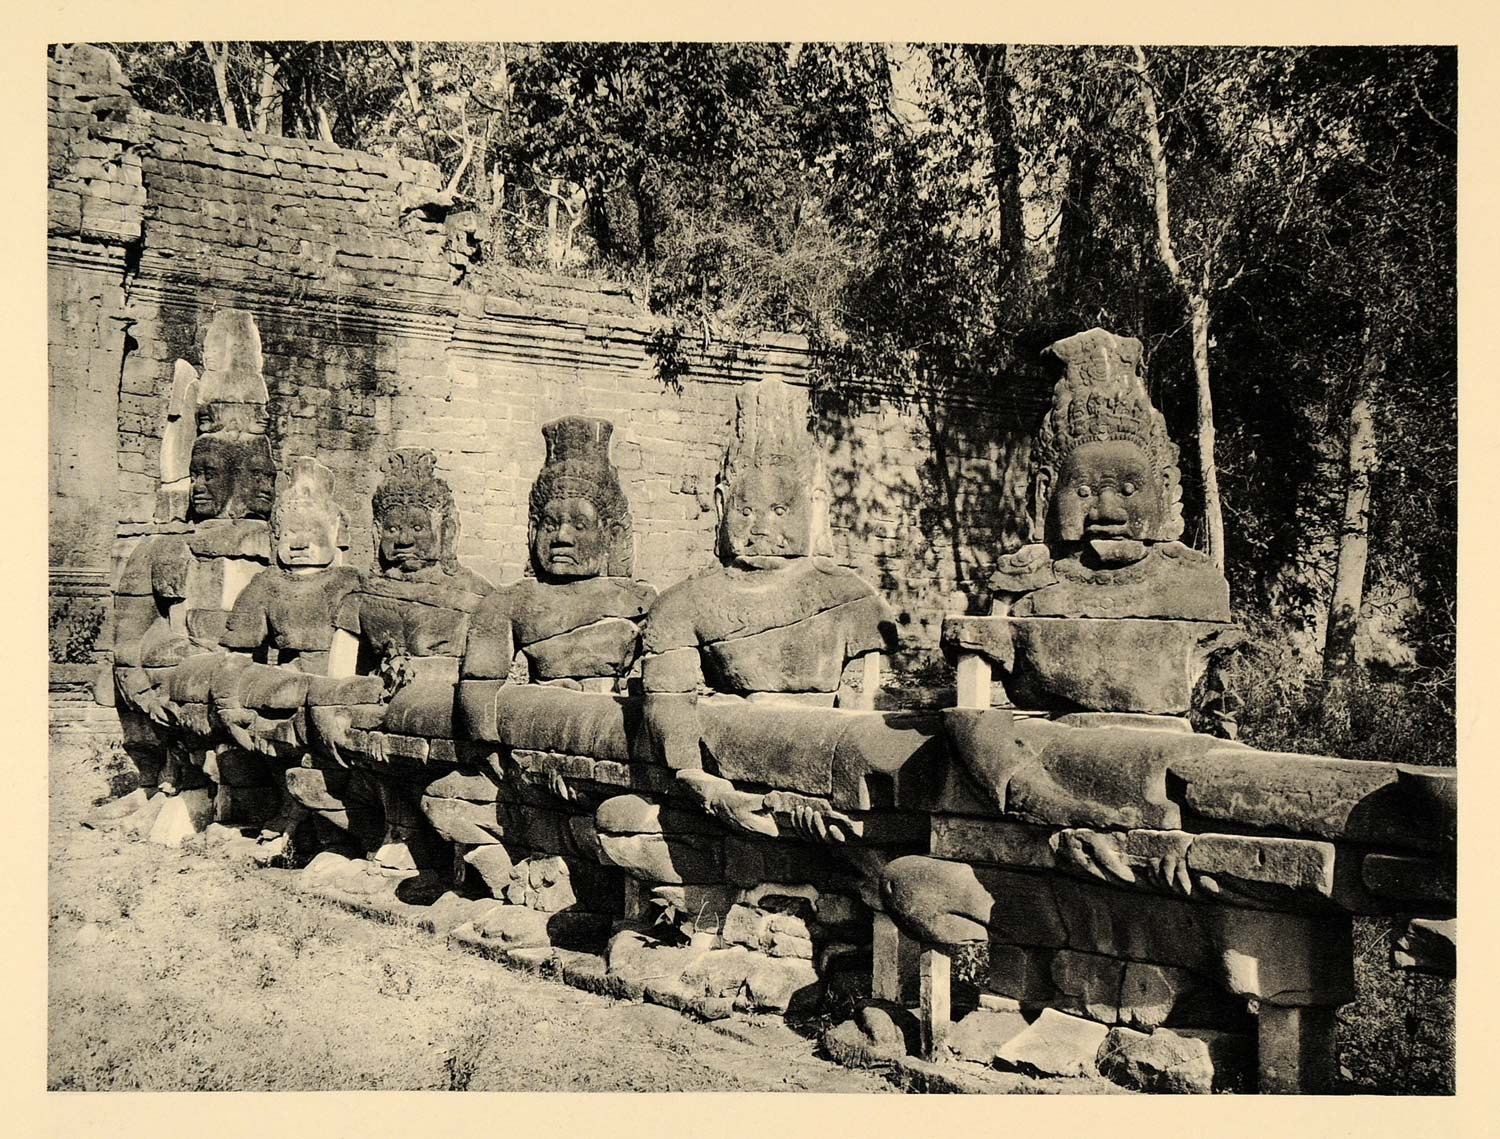 1929 Photogravure Angkor Thom Cambodia Victory Gate Watchmen Warriers Sculpture